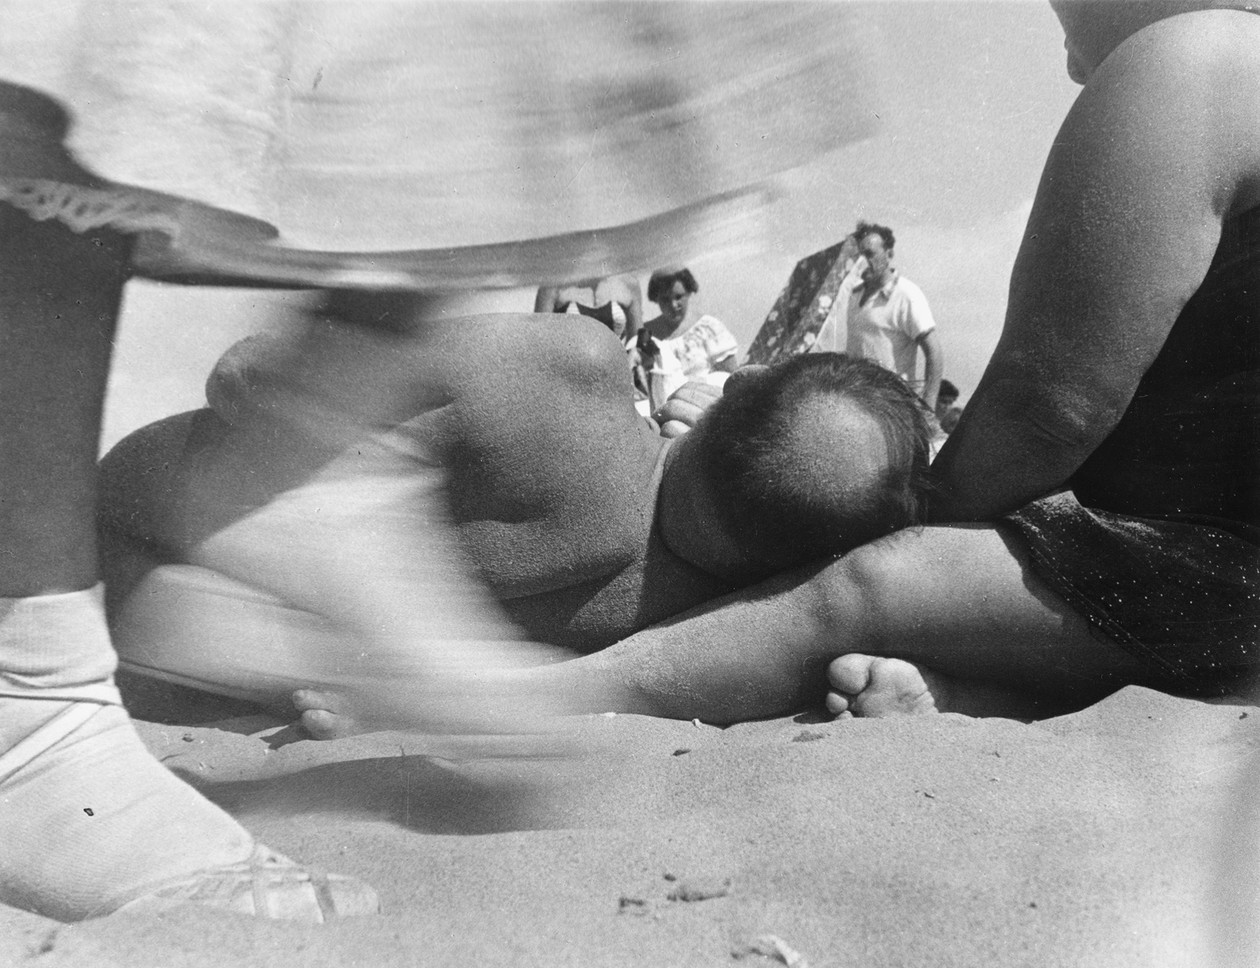 Coney Island (1952) by Leon Levinstein